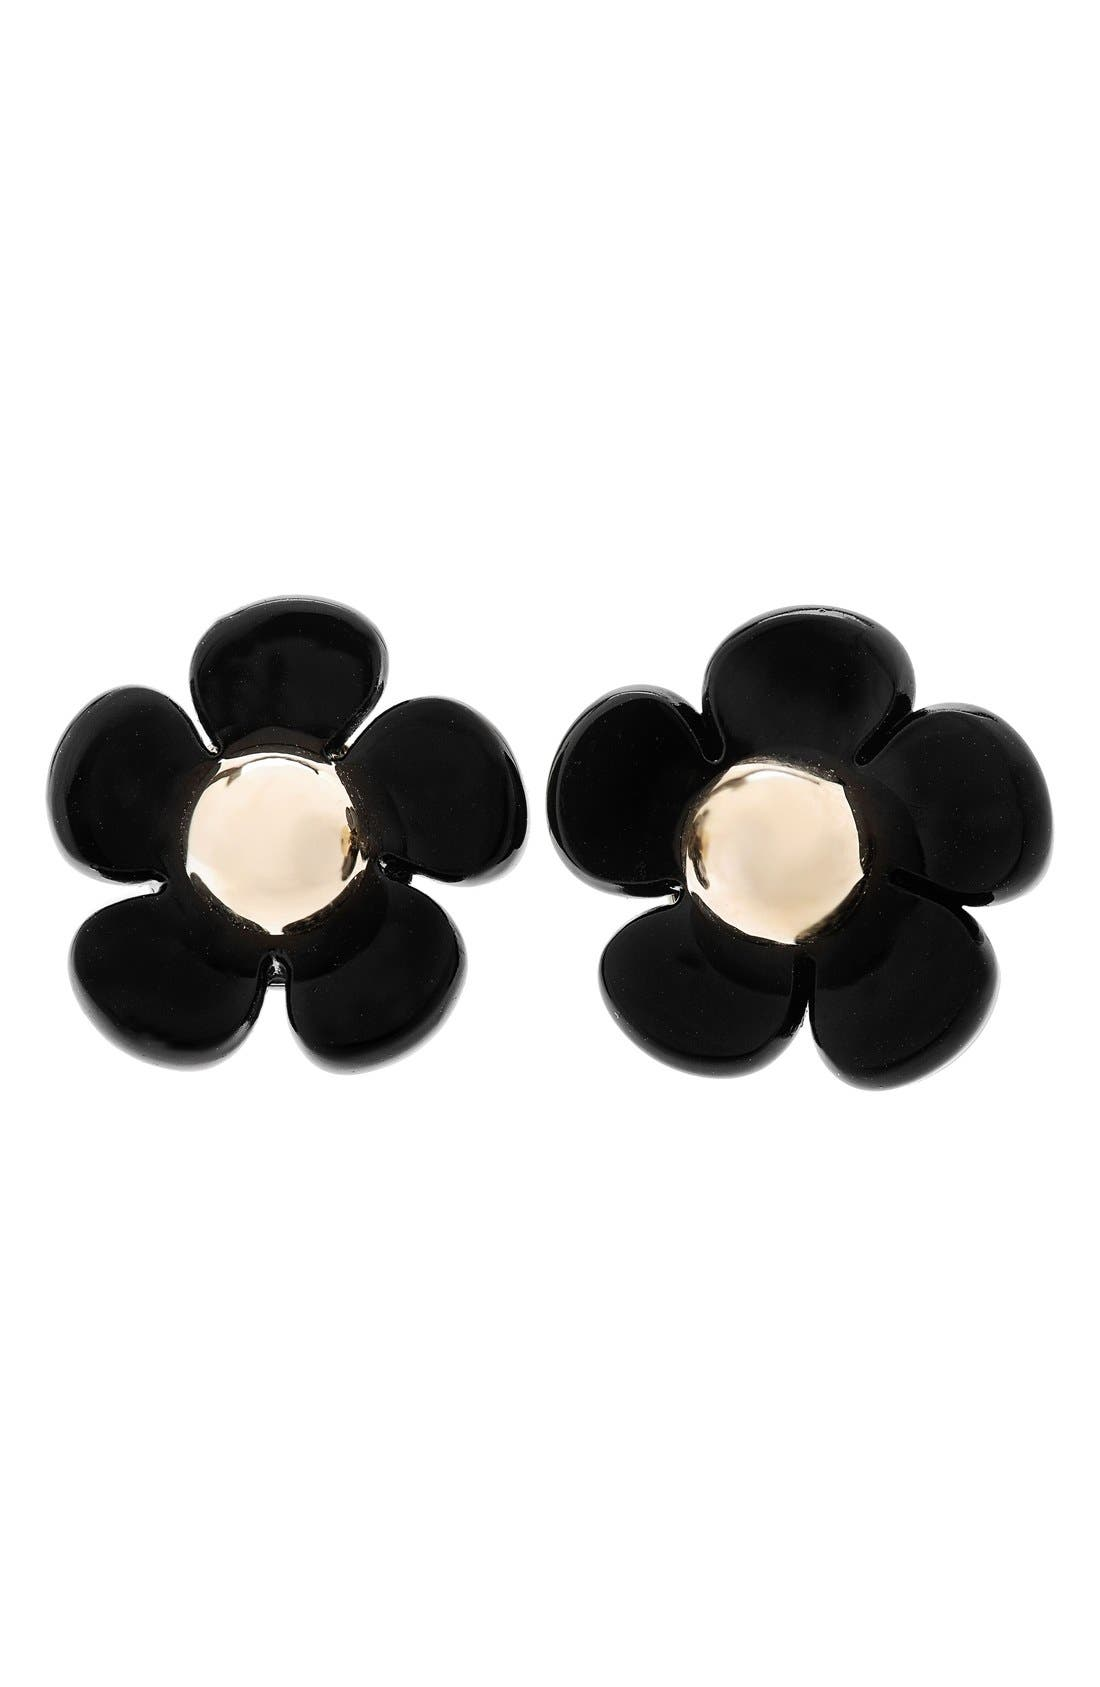 Floral Stud Earrings,                         Main,                         color, Black/ Gold